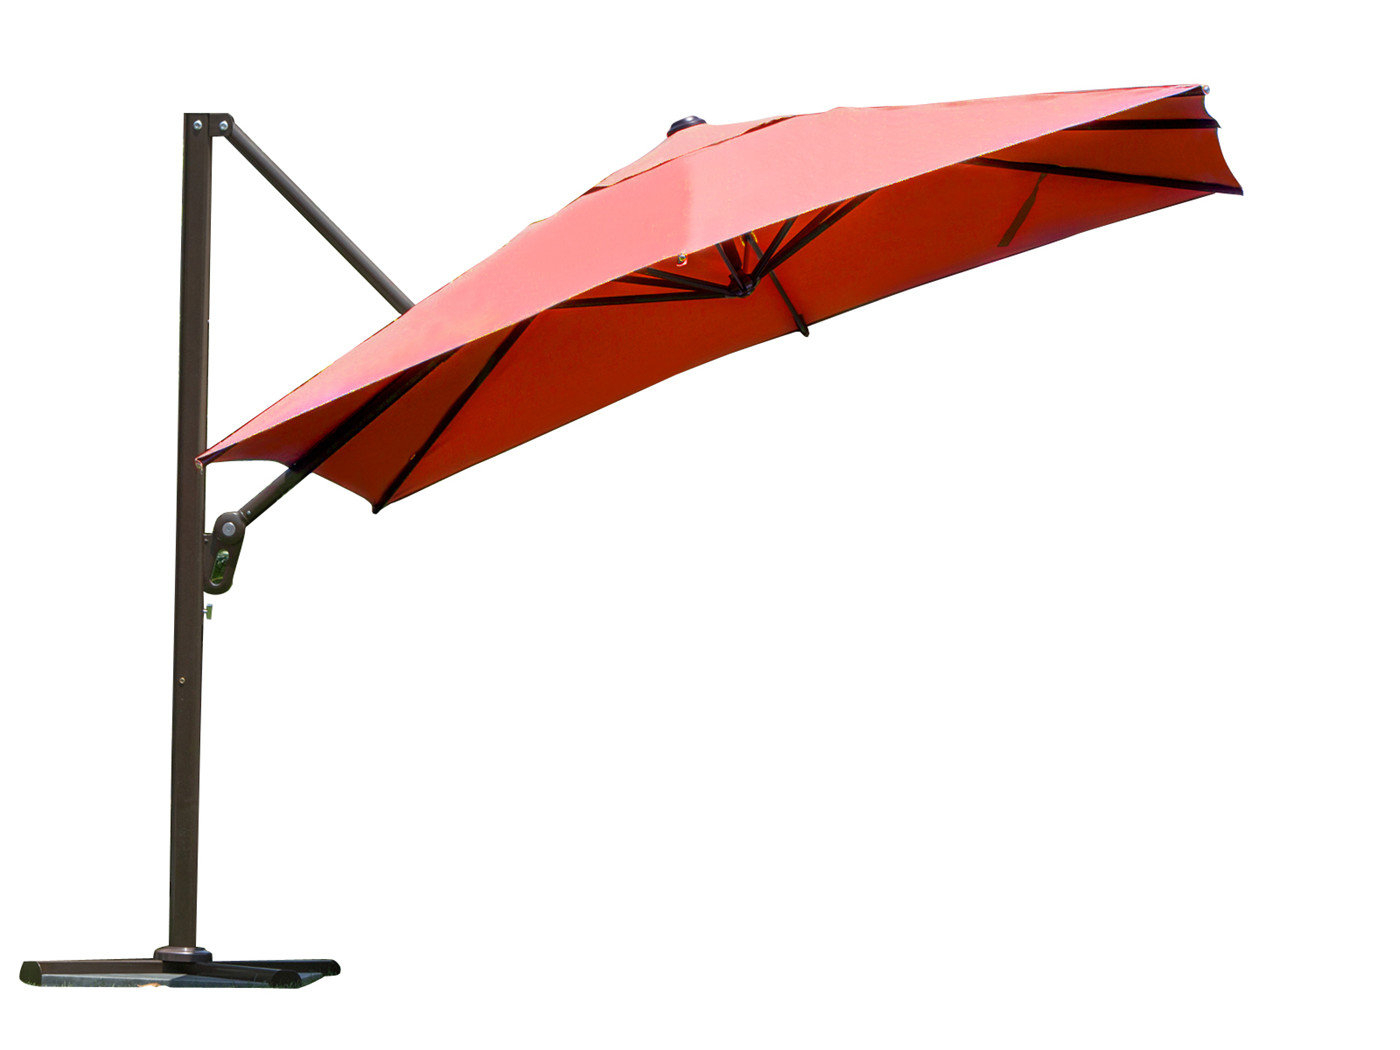 2019 9' Square Cantilever Umbrella Throughout Windell Square Cantilever Umbrellas (View 7 of 20)